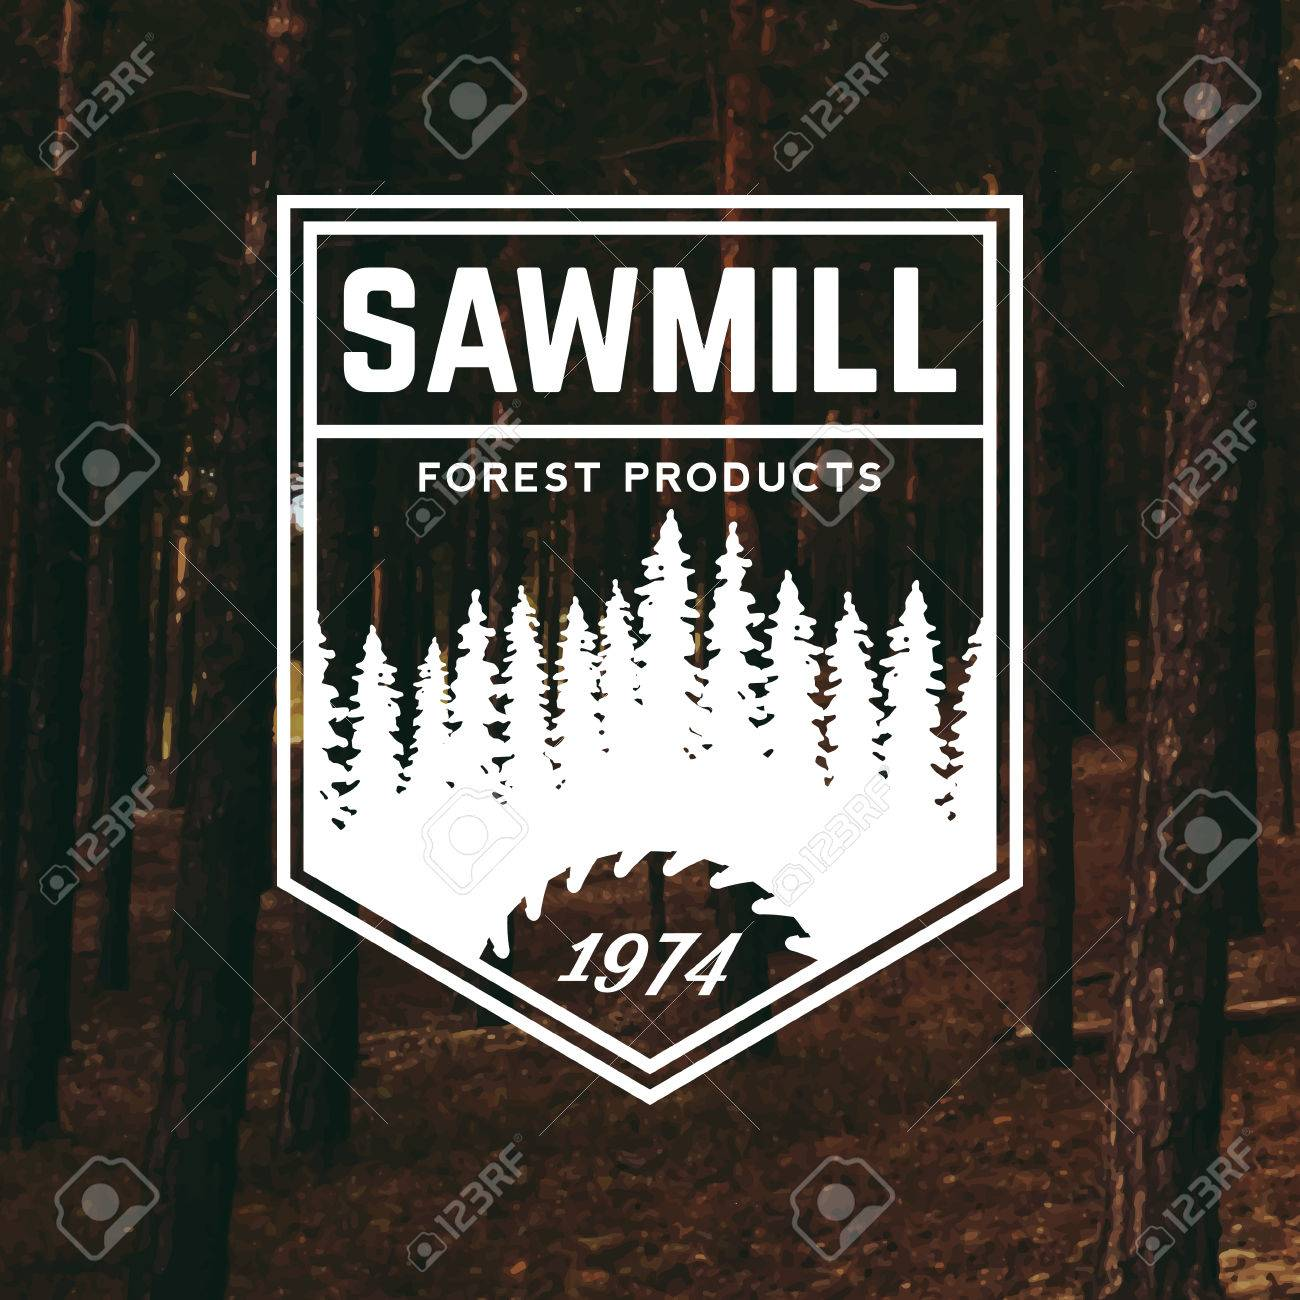 sawmill label on forest background - 42584438